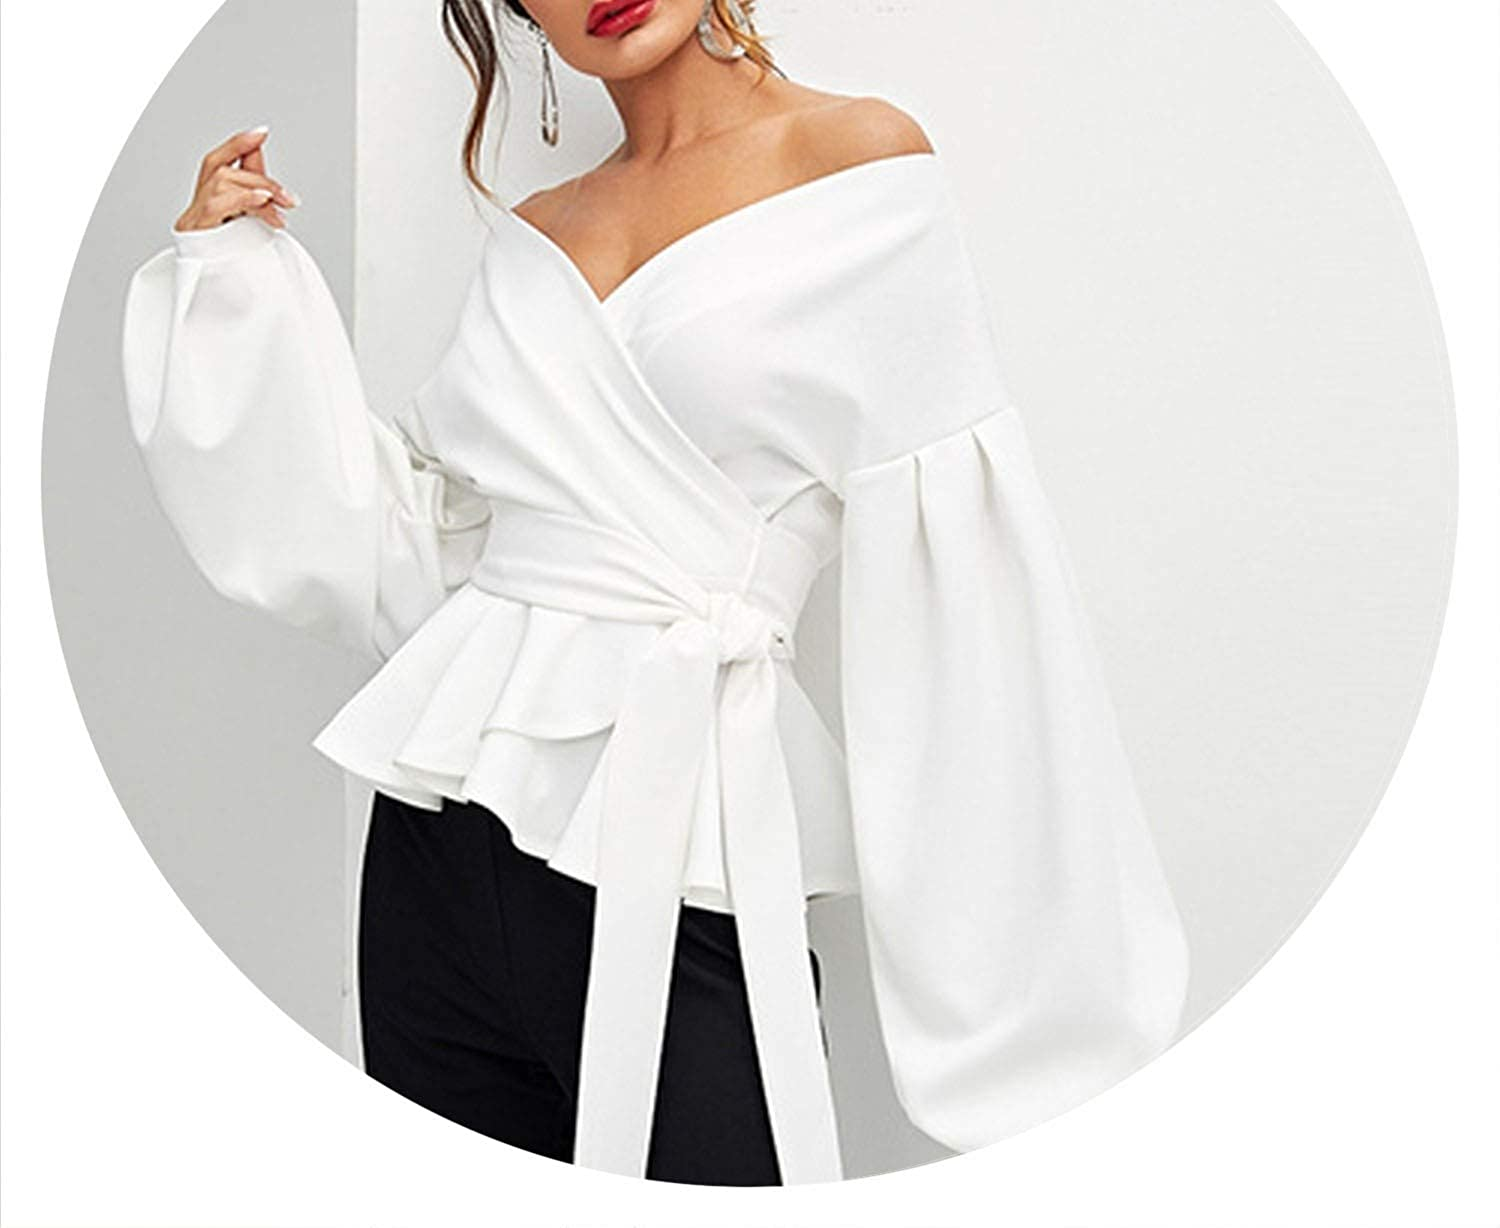 Brave pinkmary White Office Lady Elegant Lantern Sleeve Surplice Peplum Off The Shoulder Solid Tops and Blouses